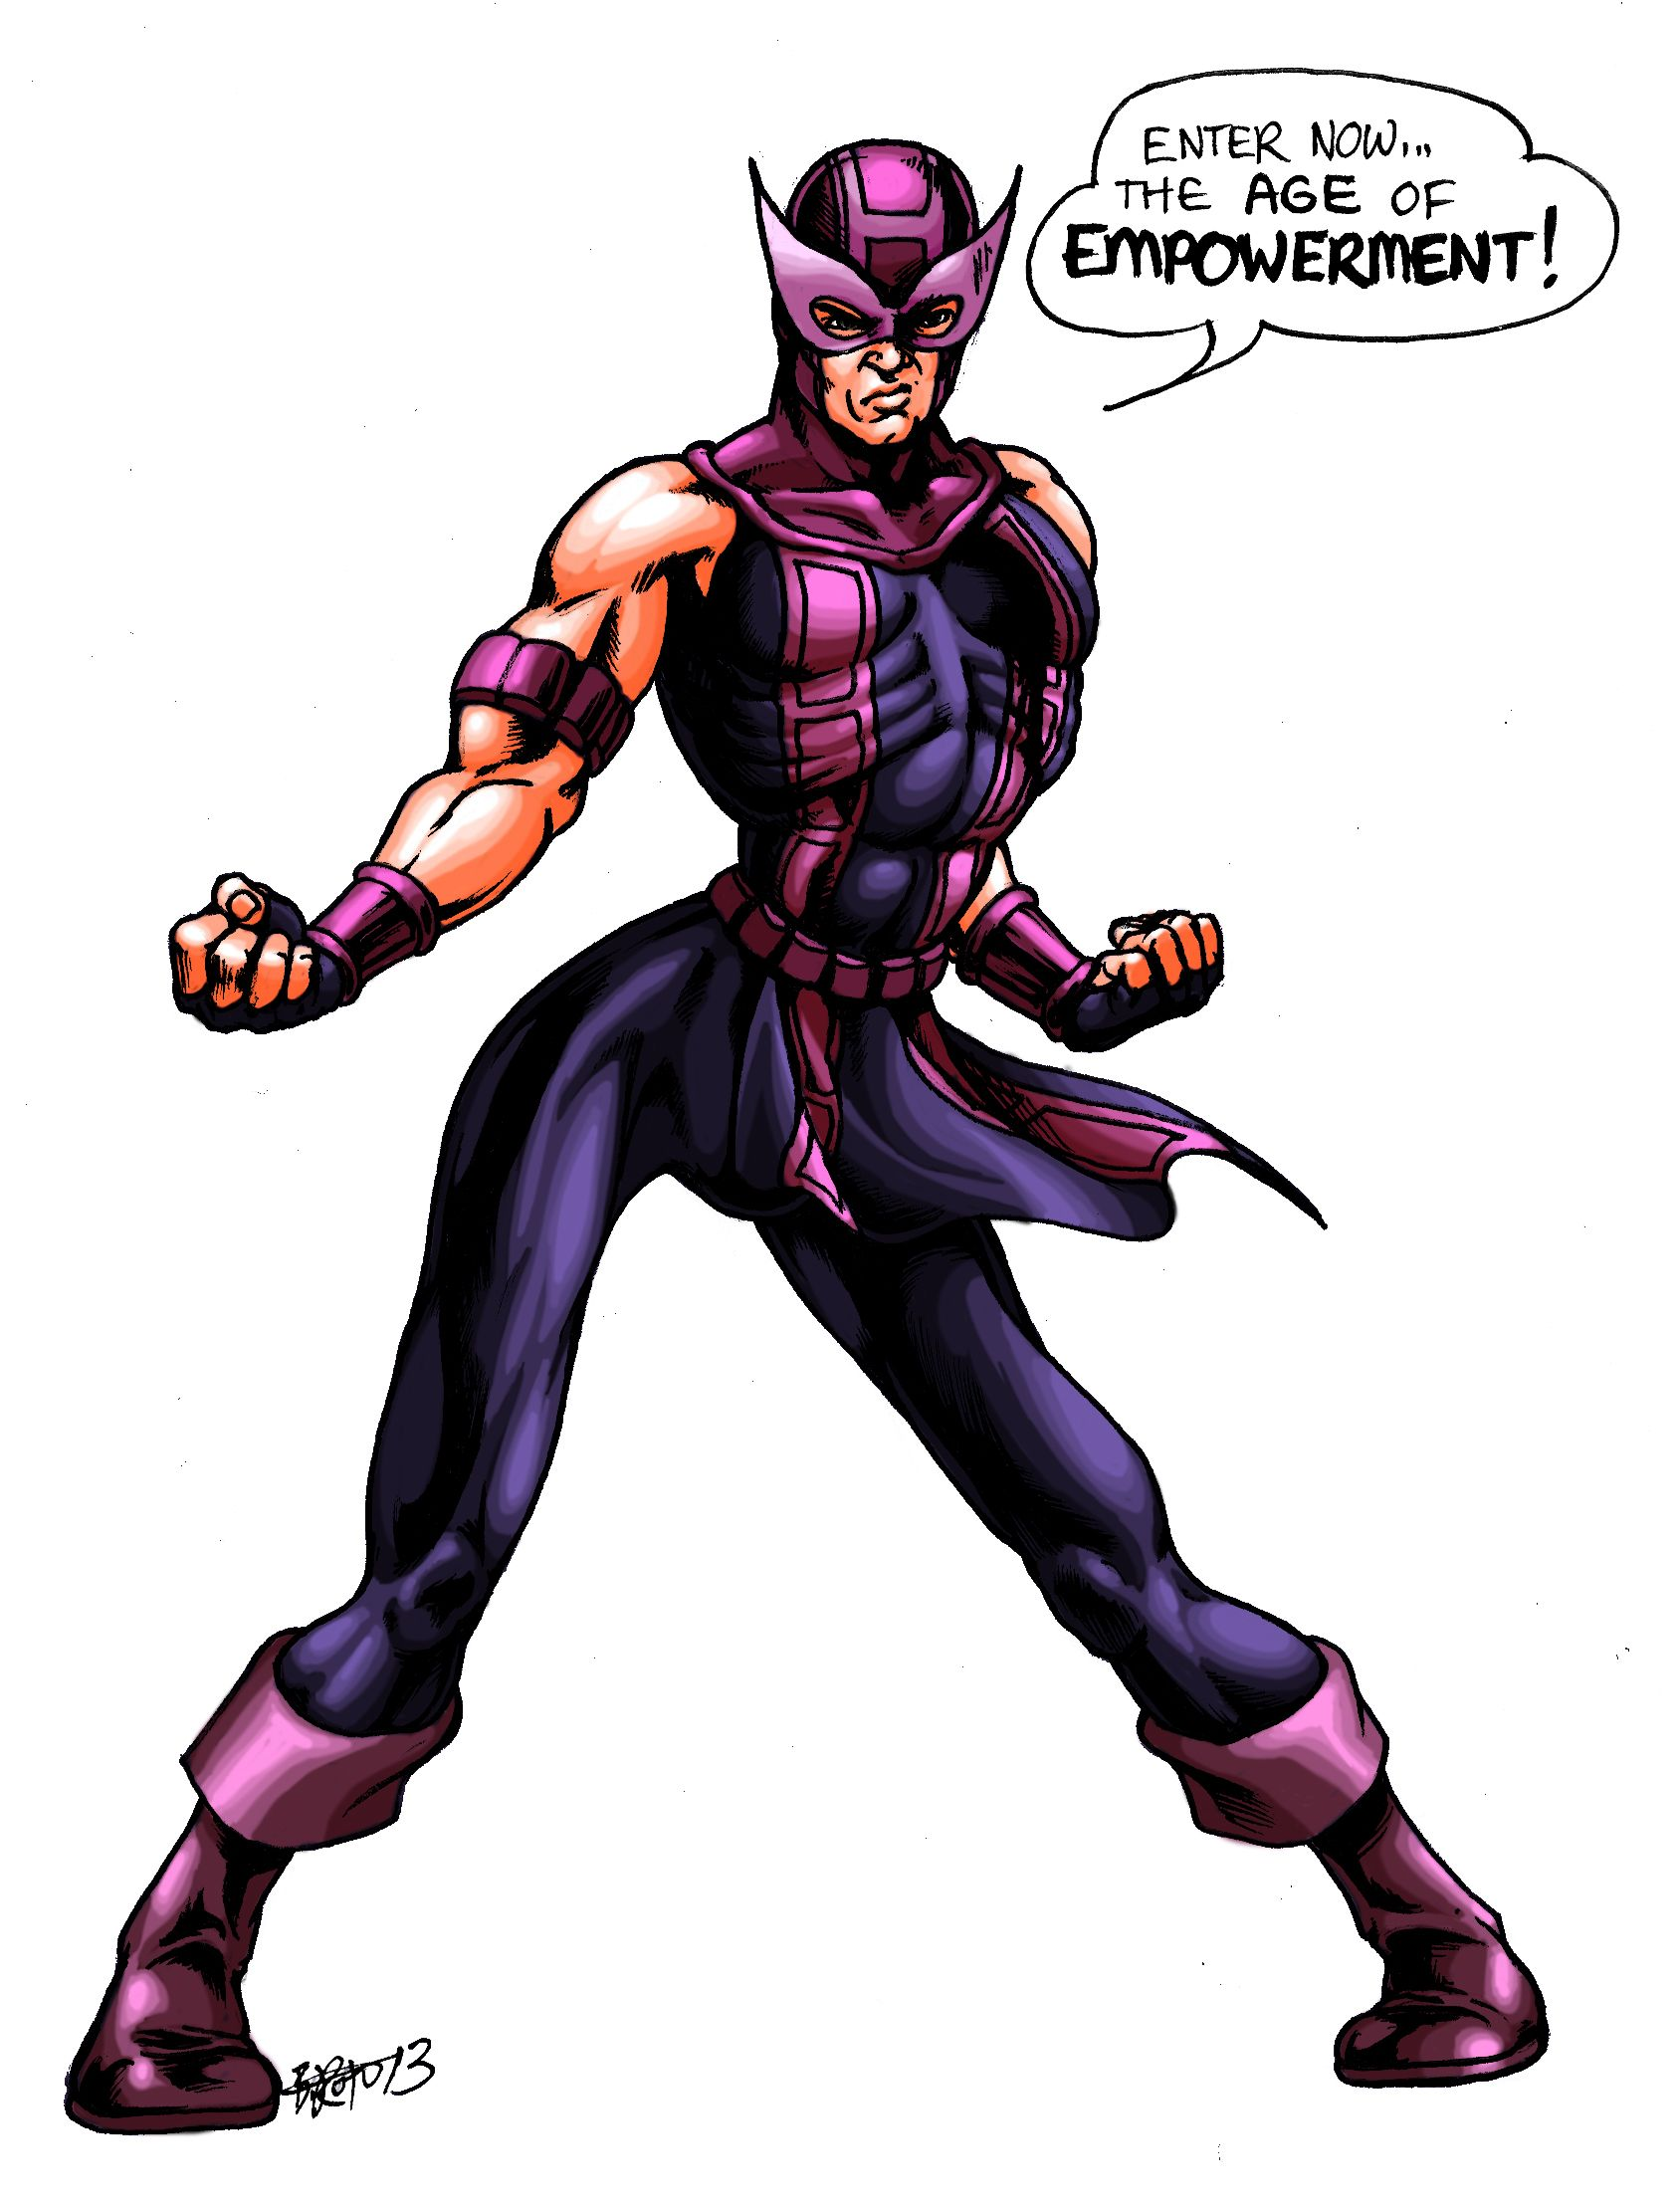 Hawkeye in an awkward stance, by Britt Roth